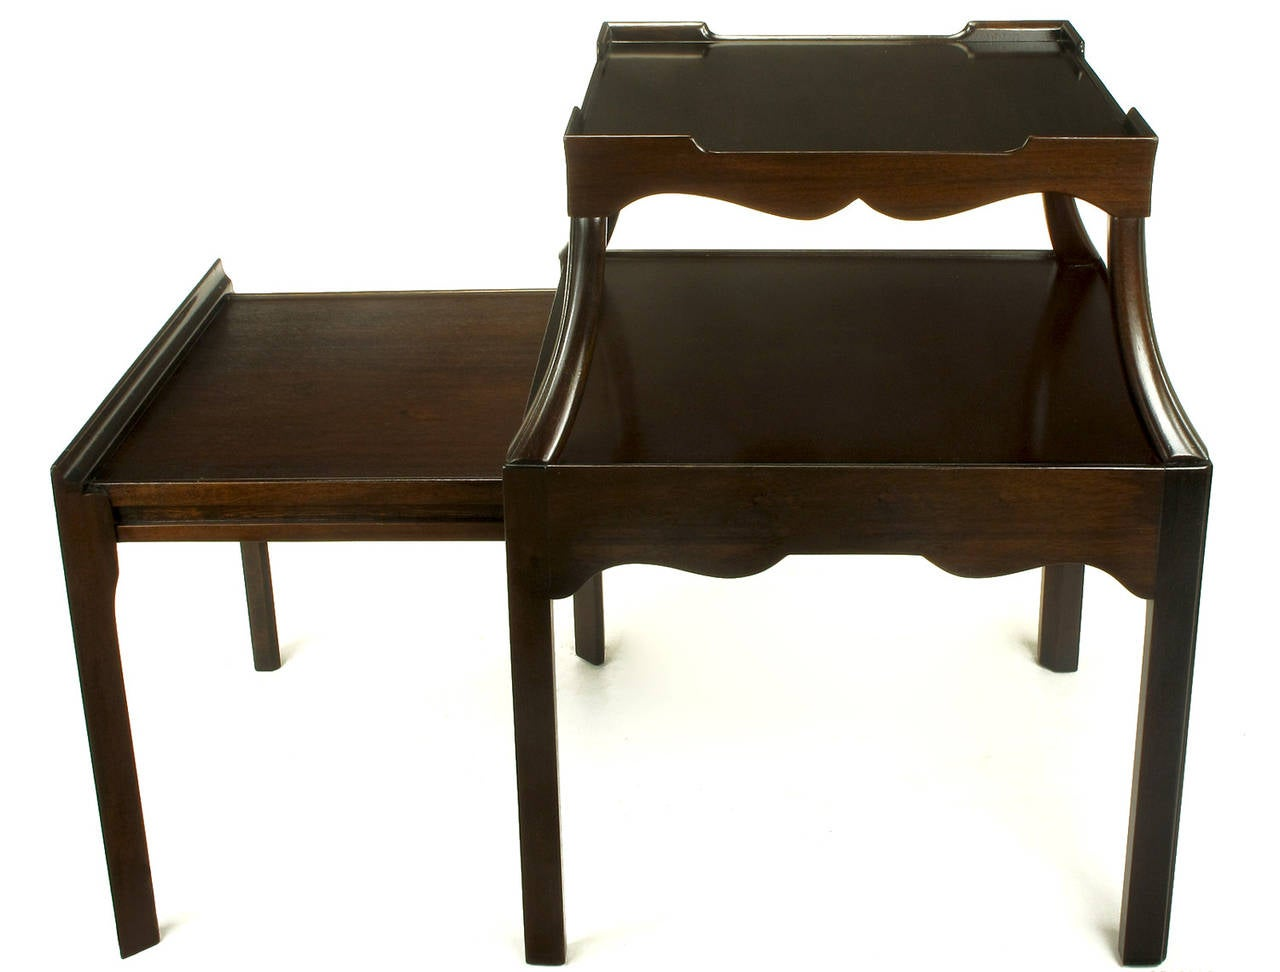 Pair of 1940s Two-Tier Mahogany End Tables with Extensible Nesting Top 6